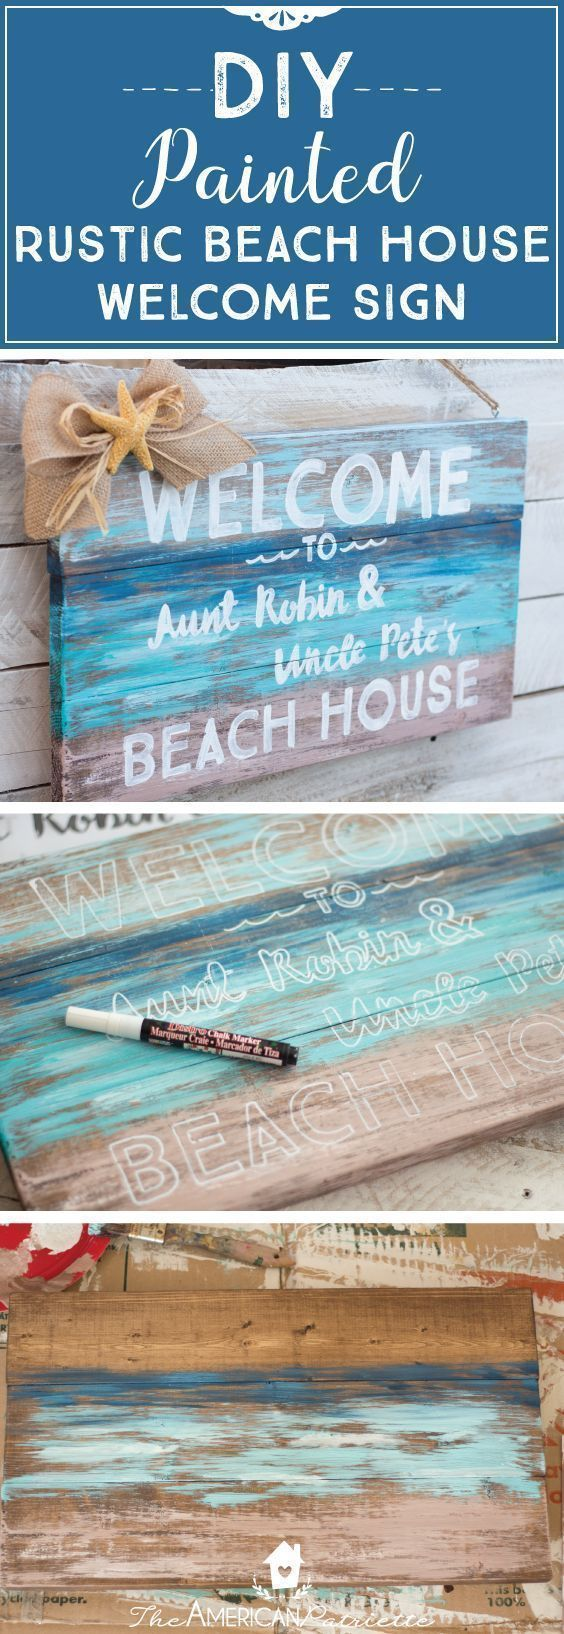 DIY Painted Rustic Beach House Welcome Sign; DIY Welcome Sign; DIY Beach Sign; Beach Sign for Shower; Beach-Themed Shower Decor; Beach-Themed Home Decor #diyhomedecorrustic #beachhousedecorrustic #beachhousedecordiy